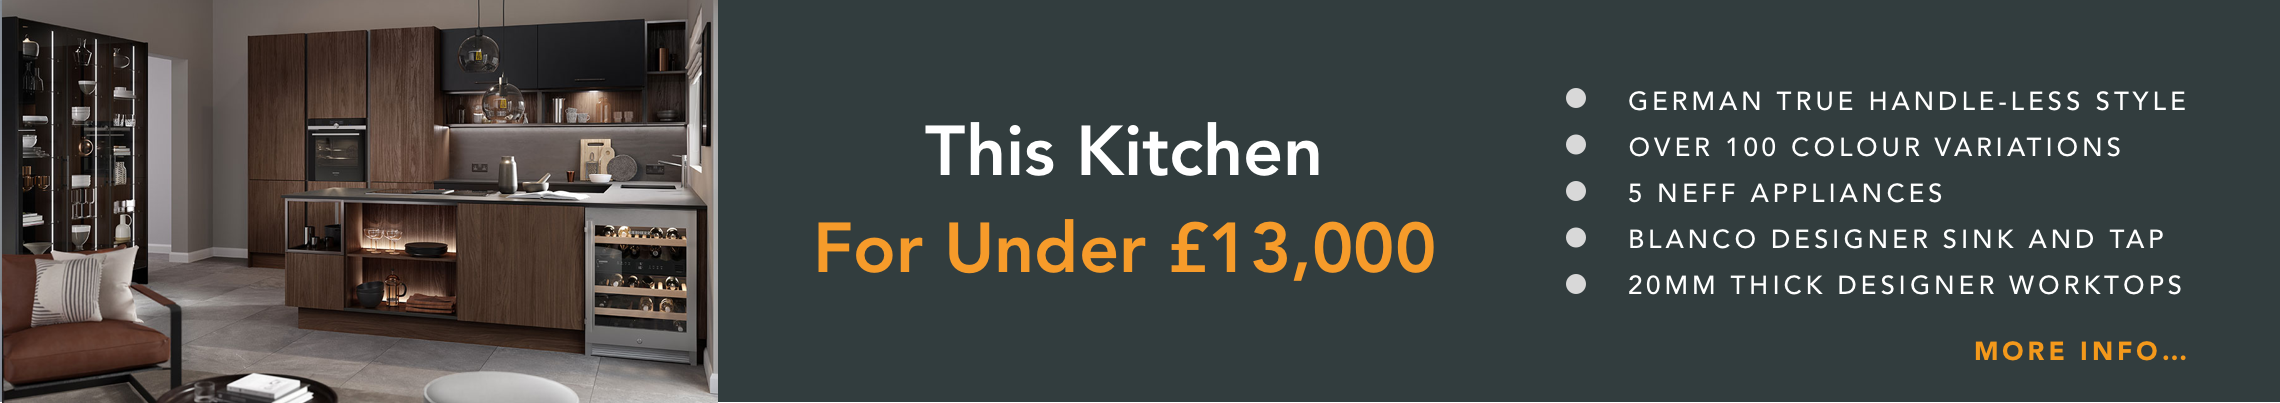 This kitchen for under £9,995